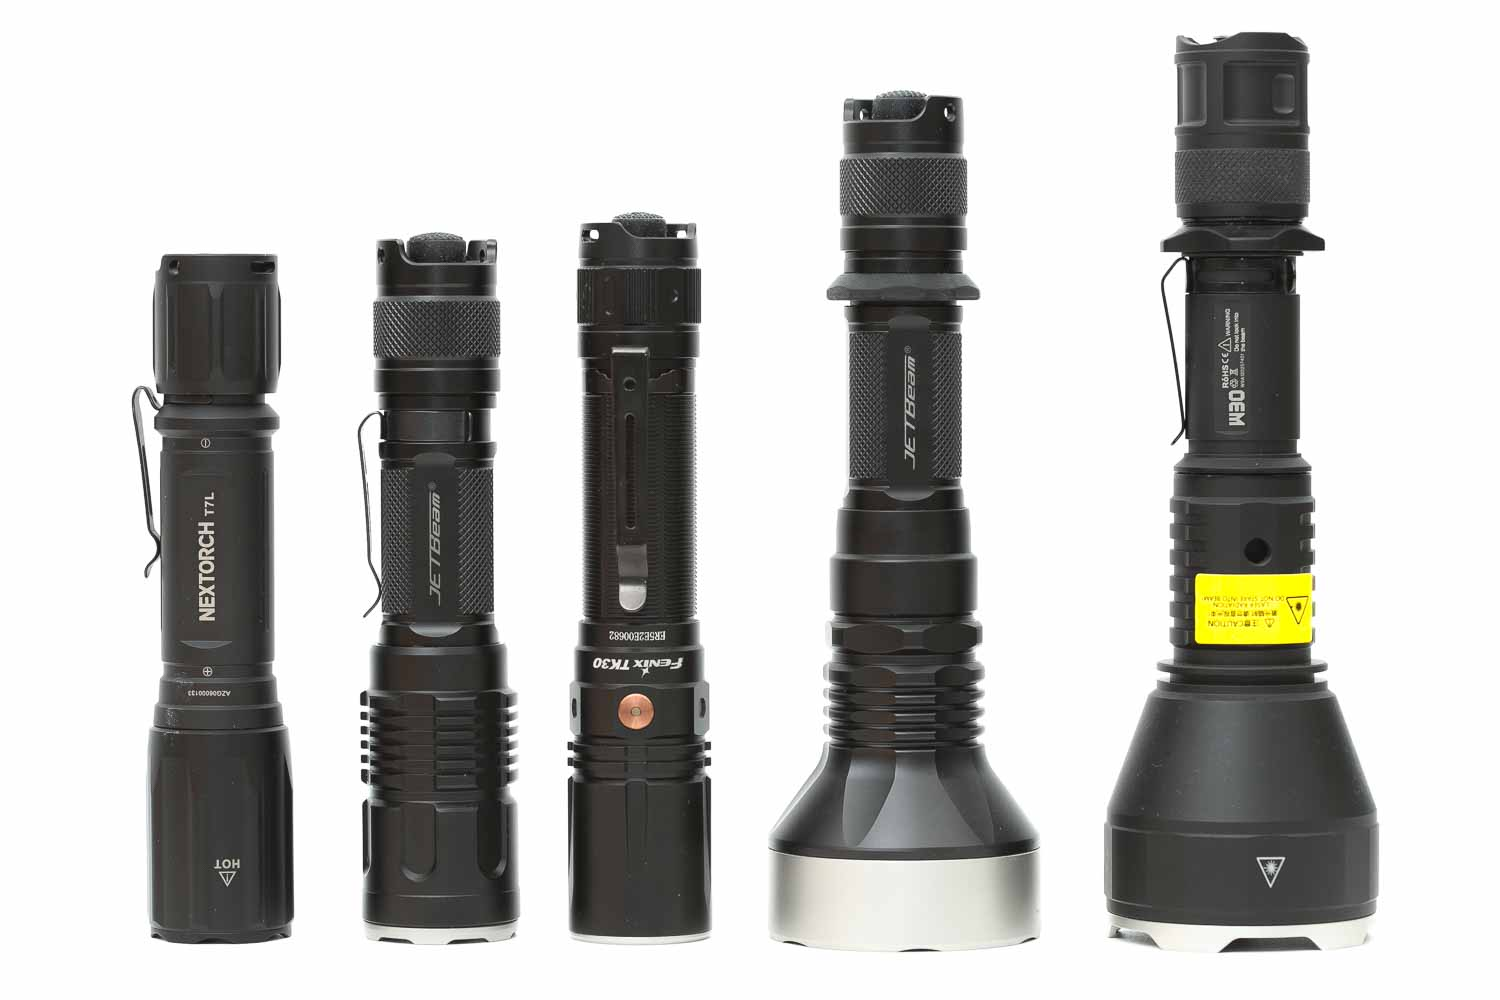 5 flashlights standing